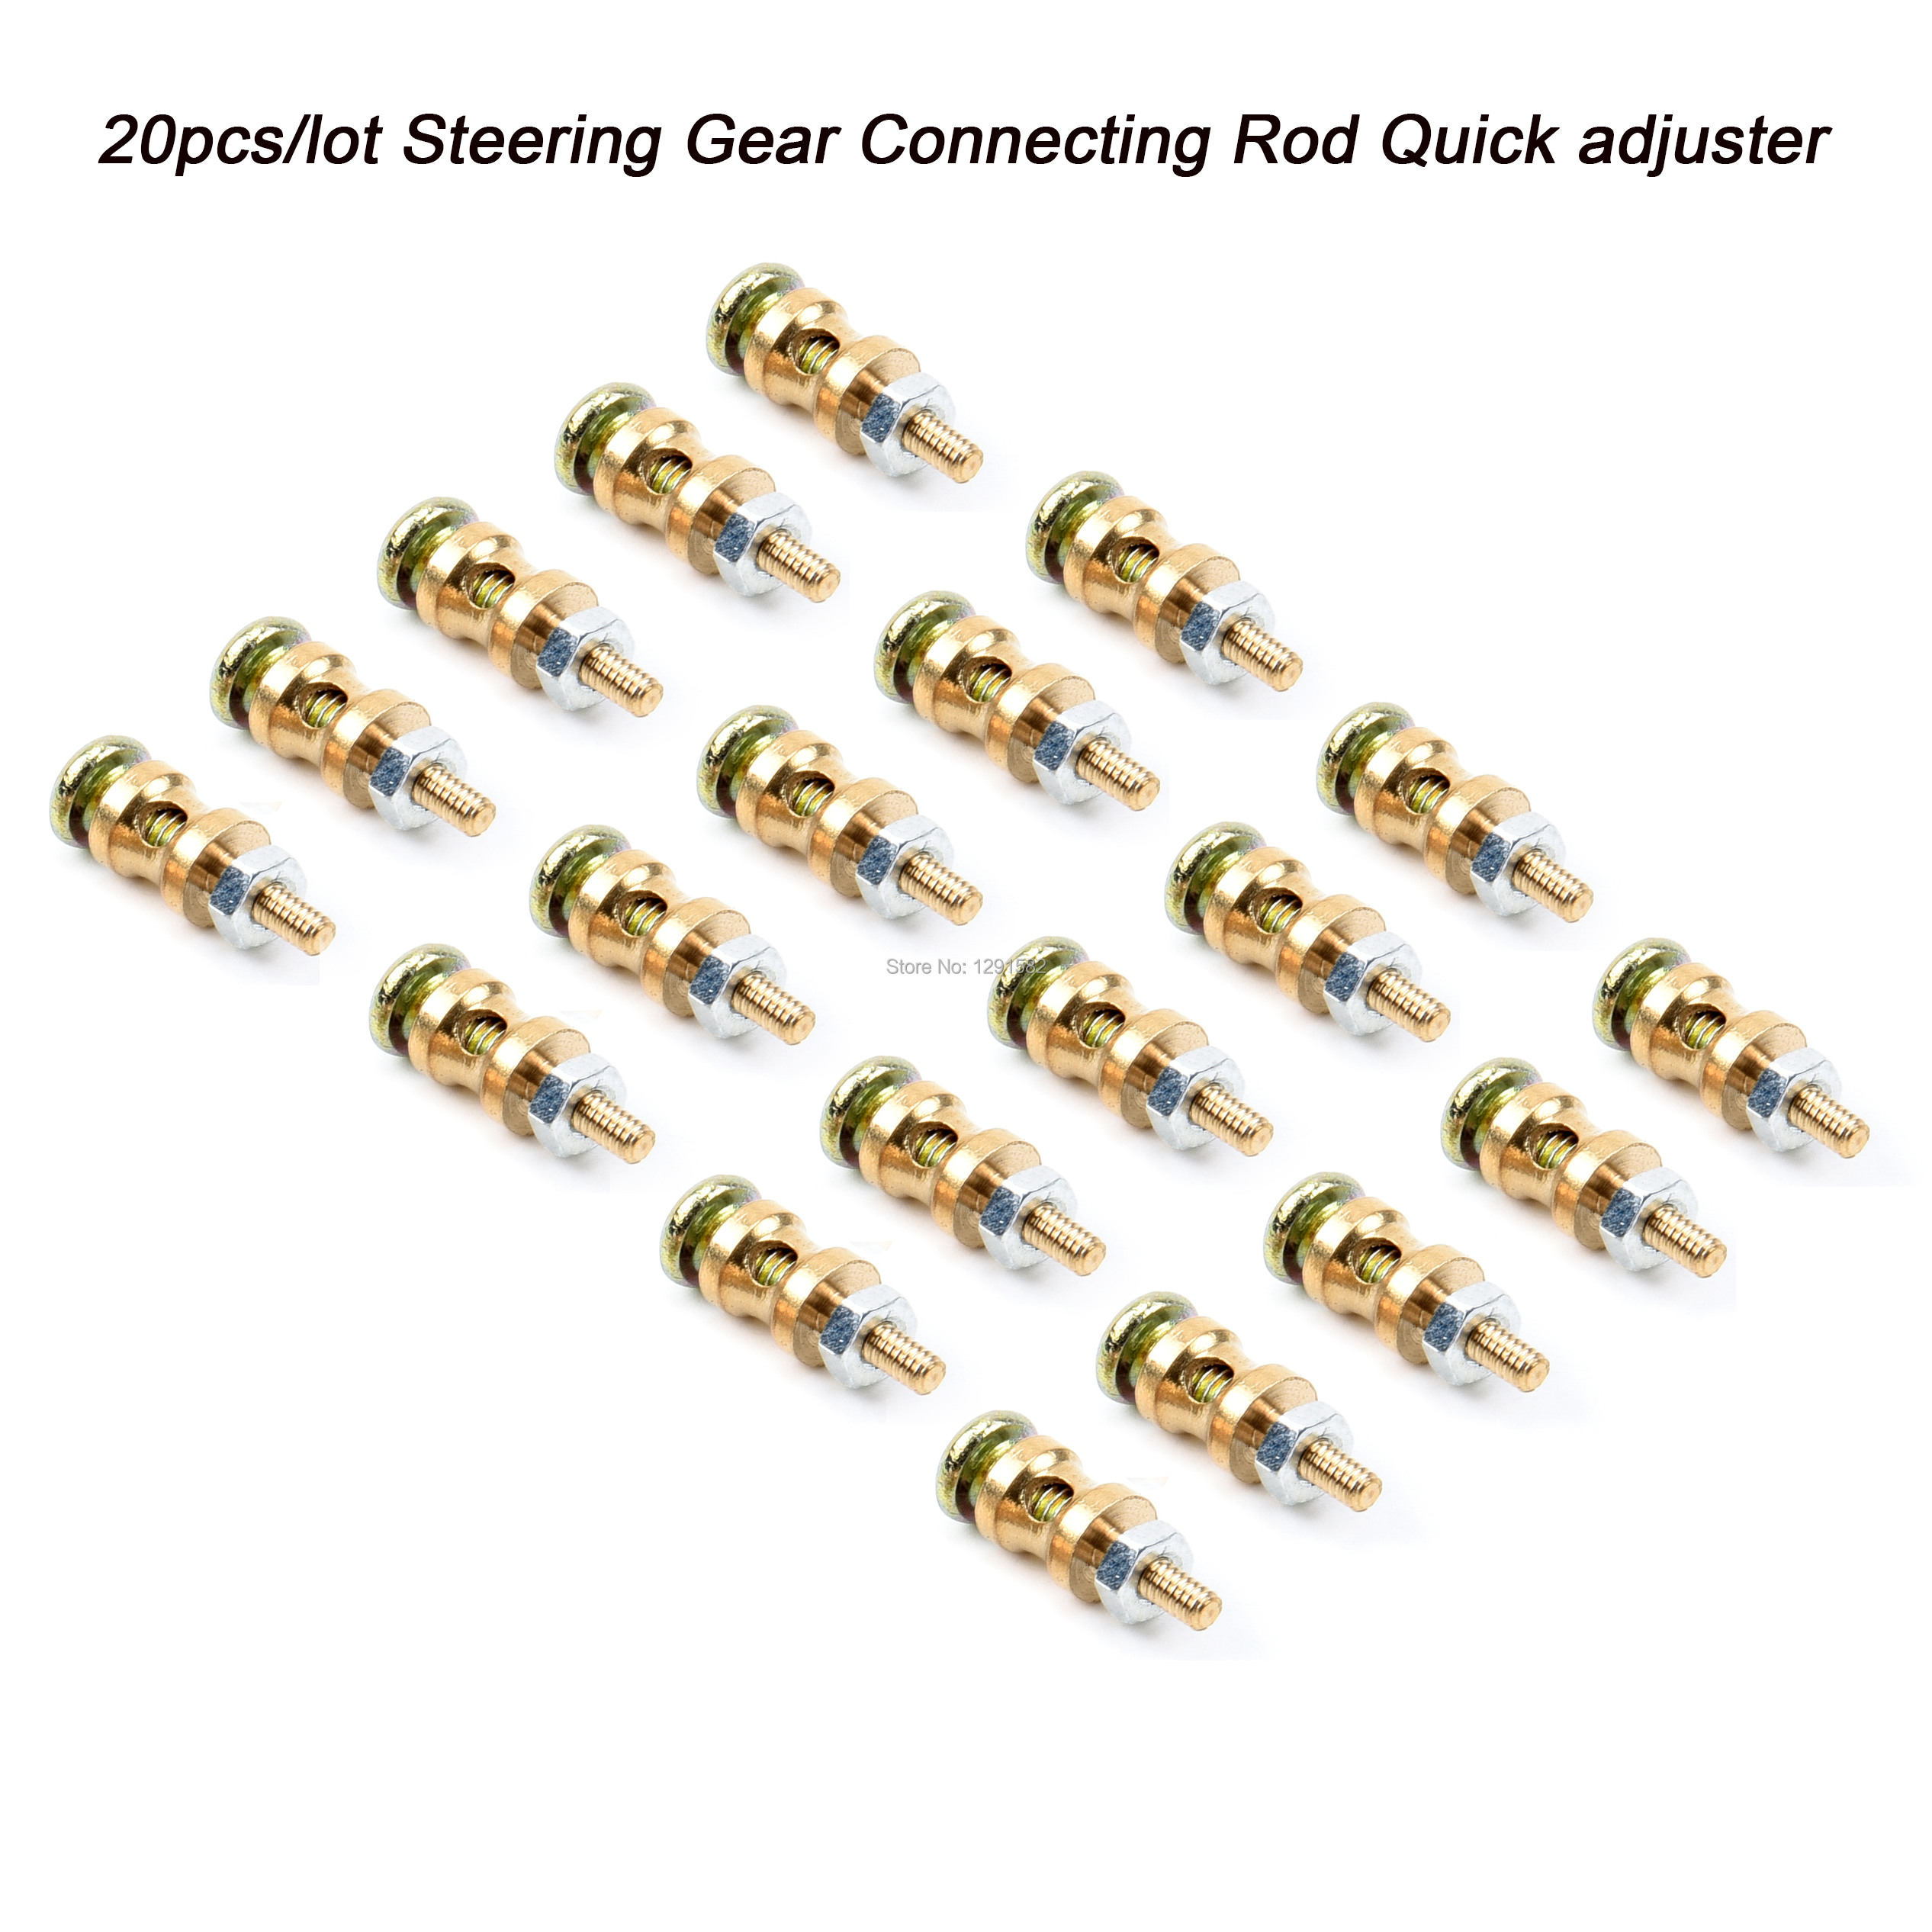 Hobbypark 25pcs Adjustable Pushrod Connector Linkage Stoppers D1.3mm RC Airplane